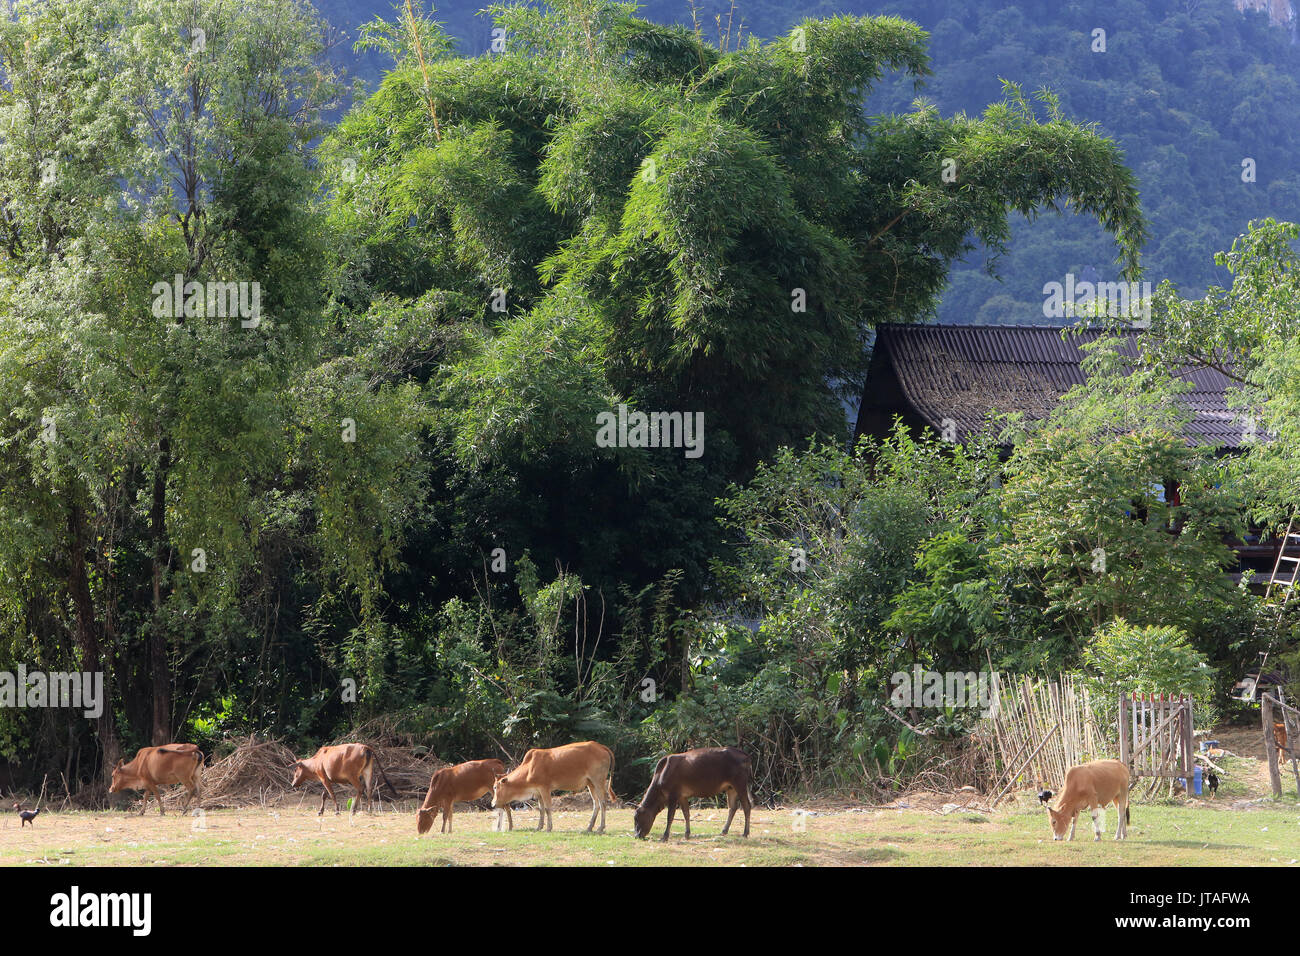 Mountainsides in rural Laos near the town of Vang Vieng, Laos, Indochina, Southeast Asia, Asia - Stock Image